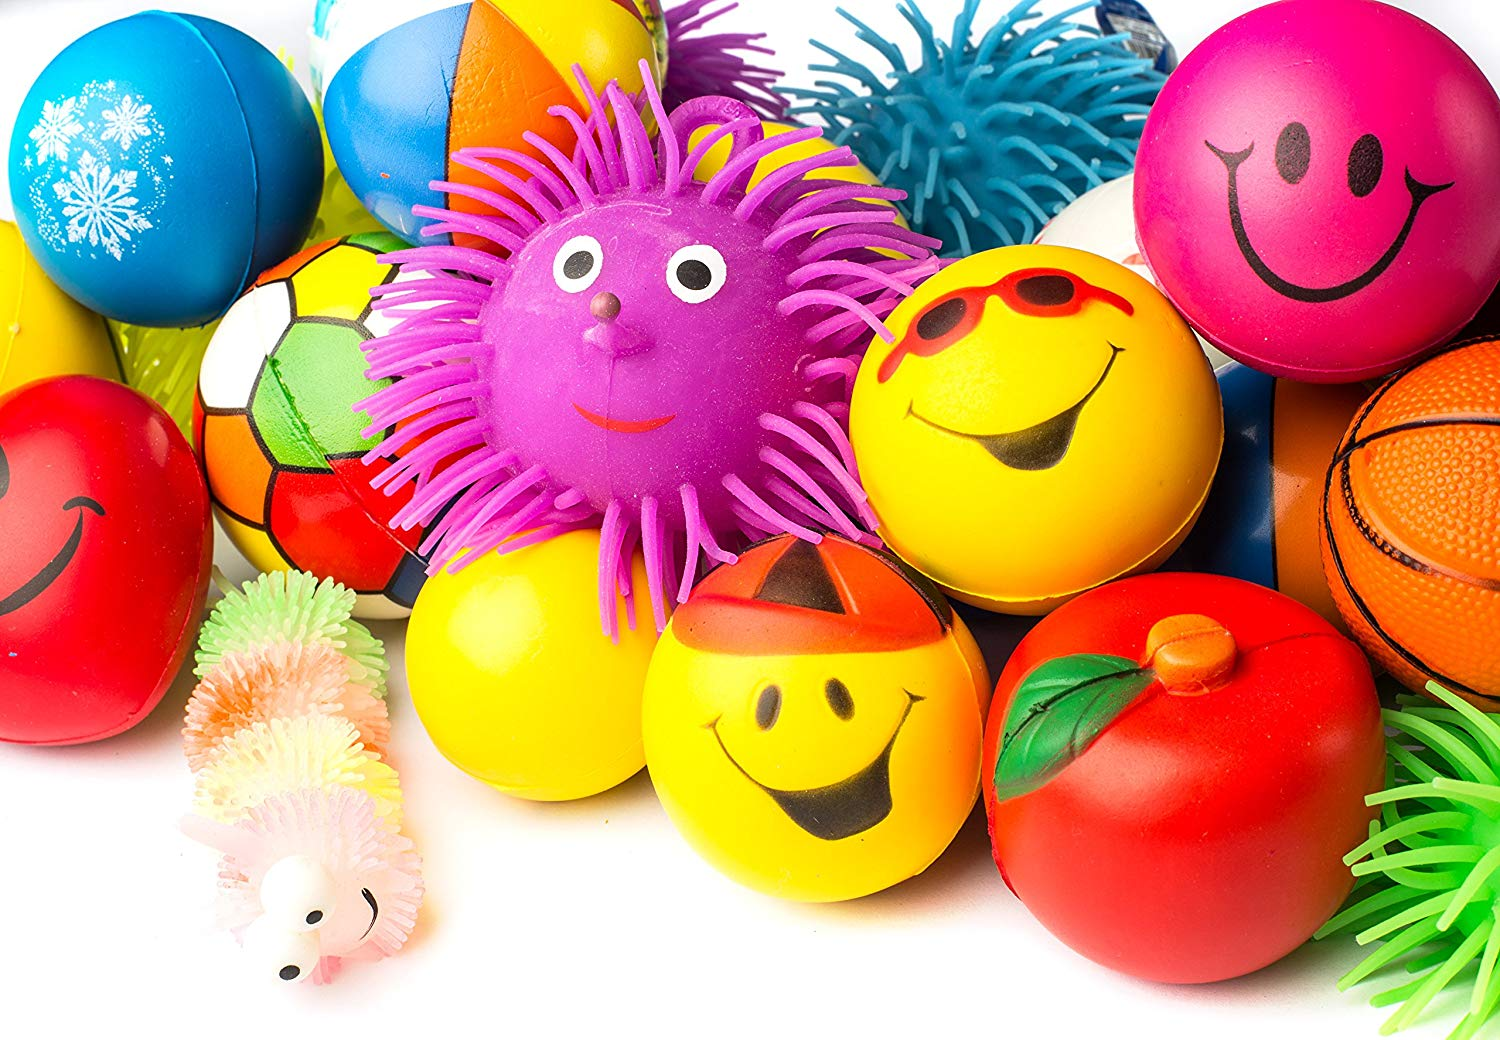 Review of Stress Balls Puffer Stress Relief Toys